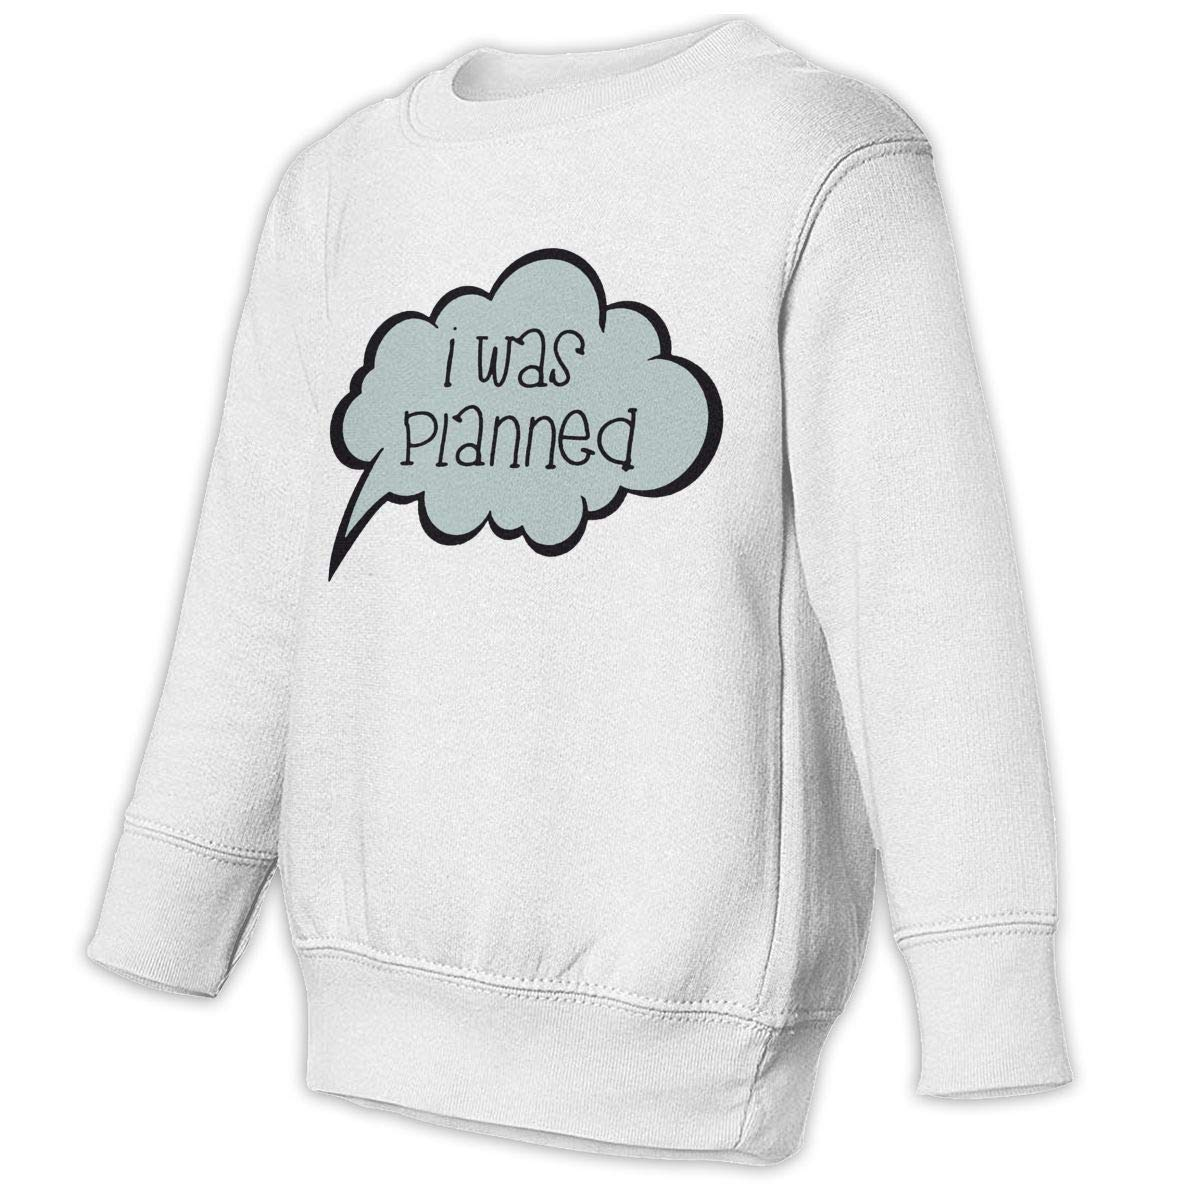 NMDJC CCQ Twins I was Planned Baby Sweatshirt Lovely Toddler Hoodies Comfortable T Shirts